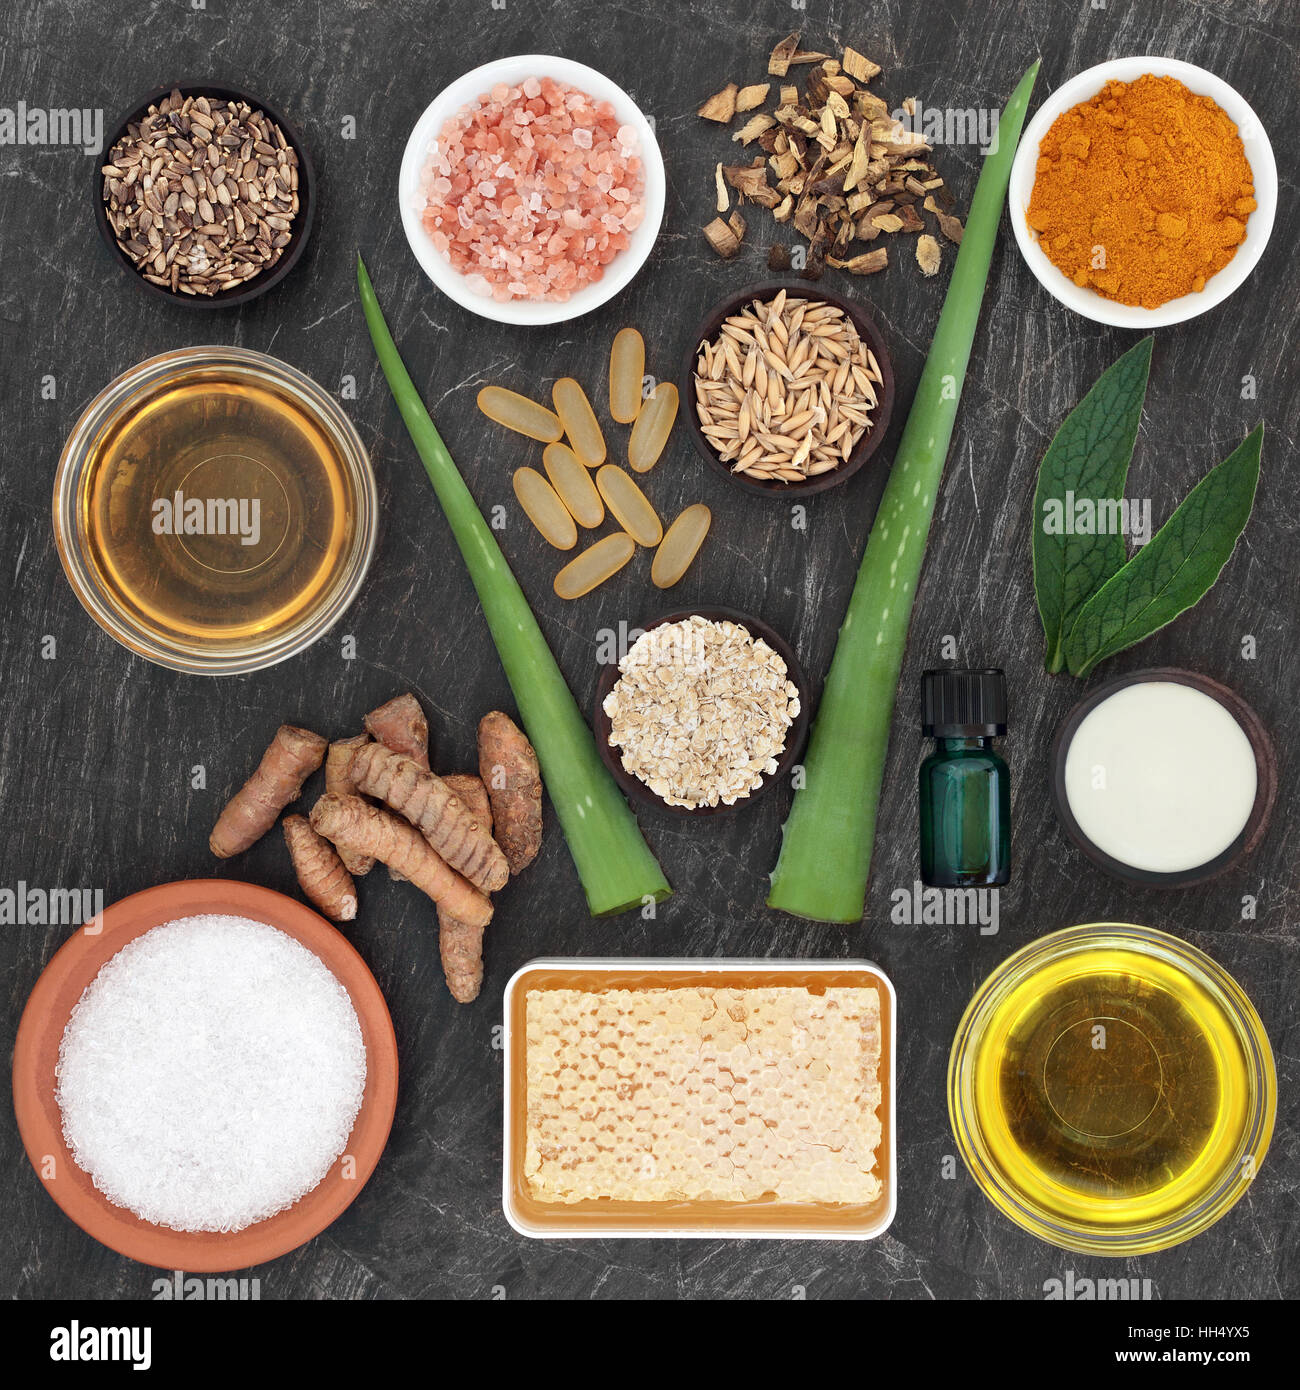 Natural skincare ingredients to soothe skin disorders including eczema and psoriasis. - Stock Image